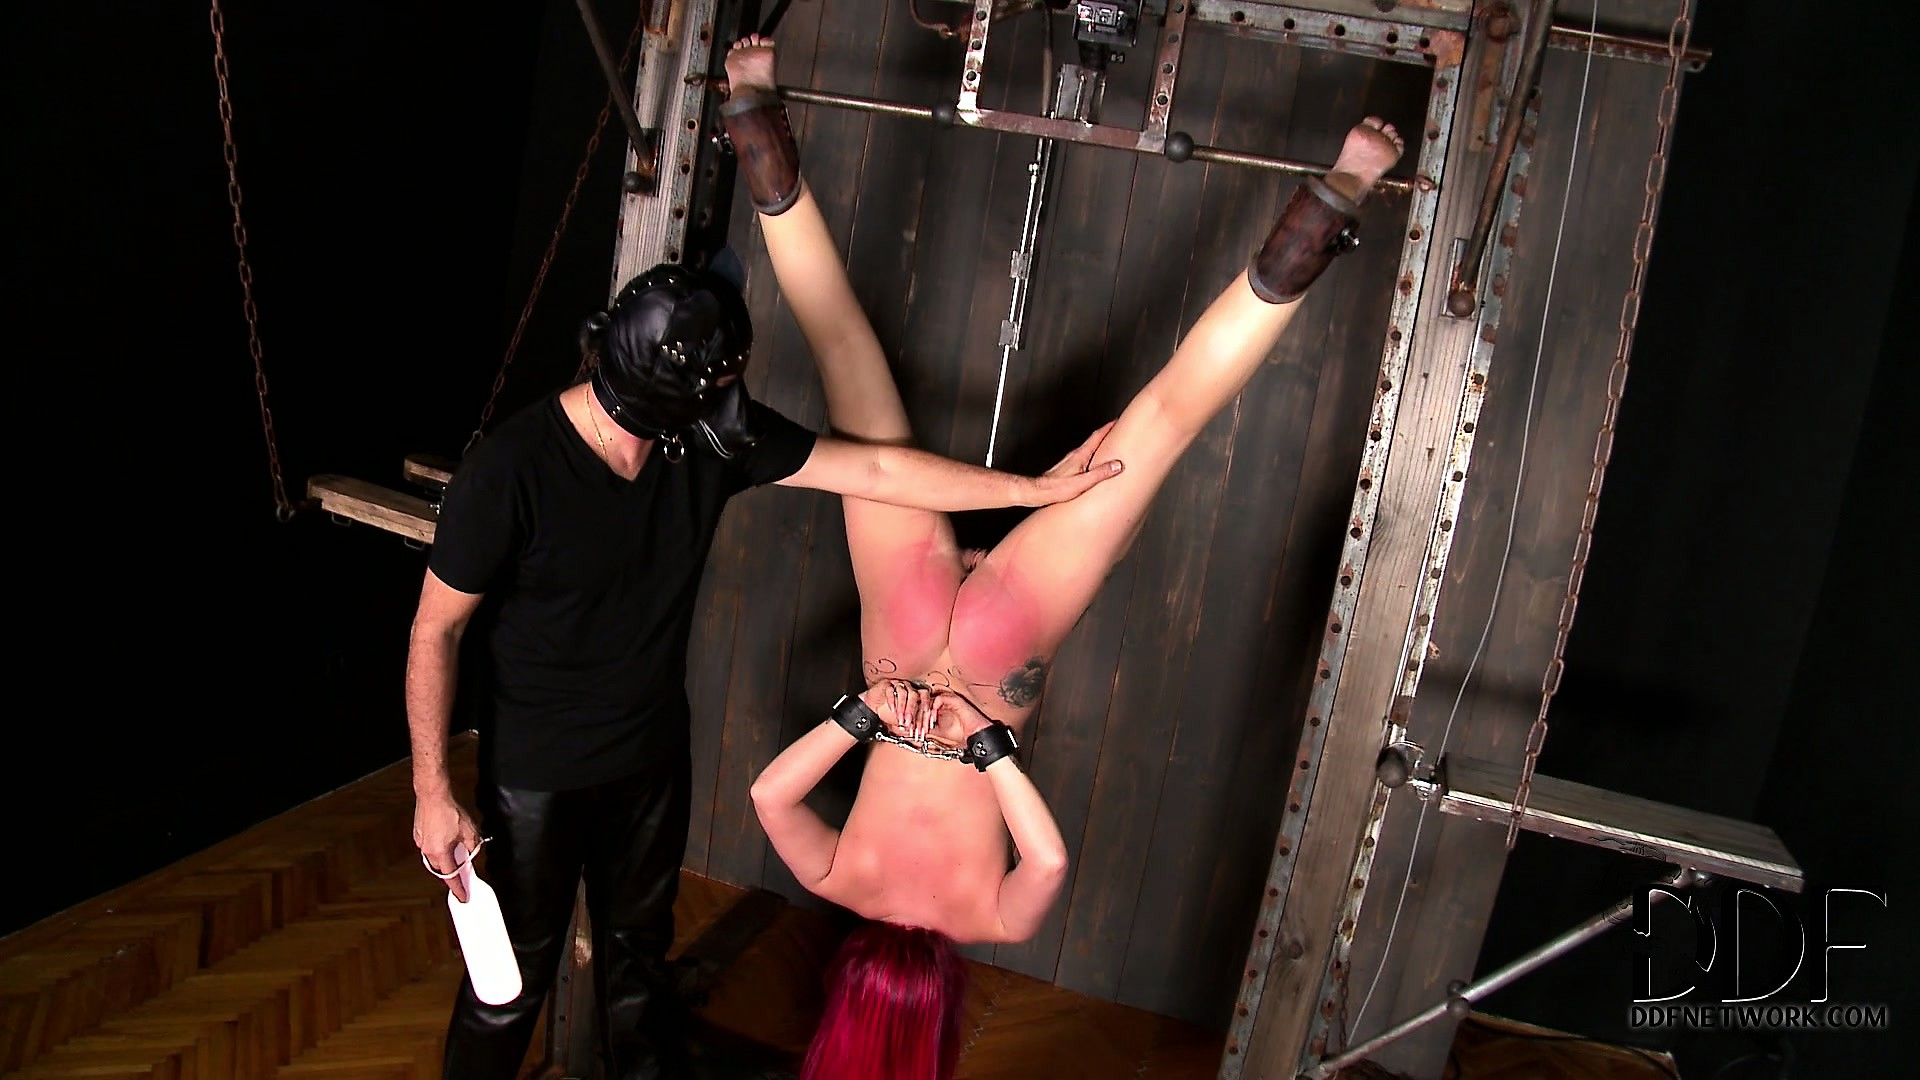 Porn Tube of The Fact That This Pain Slut Is Hanging Upside Down Won't Save Her From Kinky Pussy Play